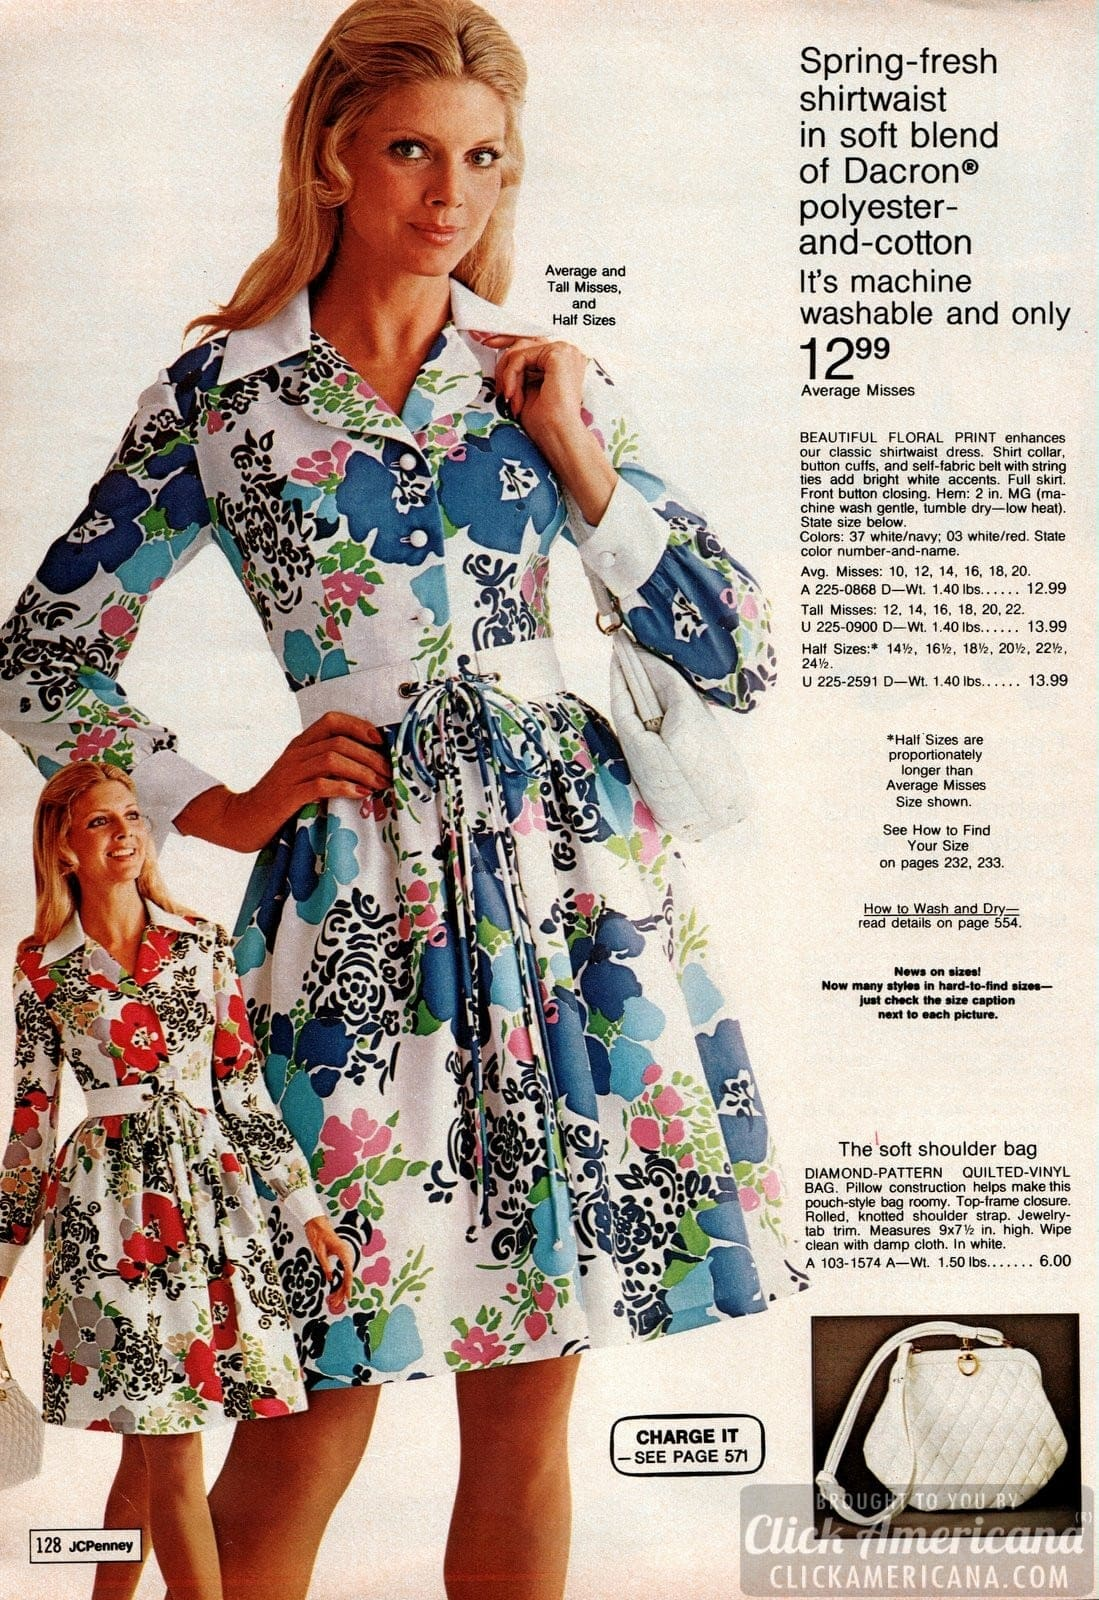 Vintage dresses - Women's fashion from 1973